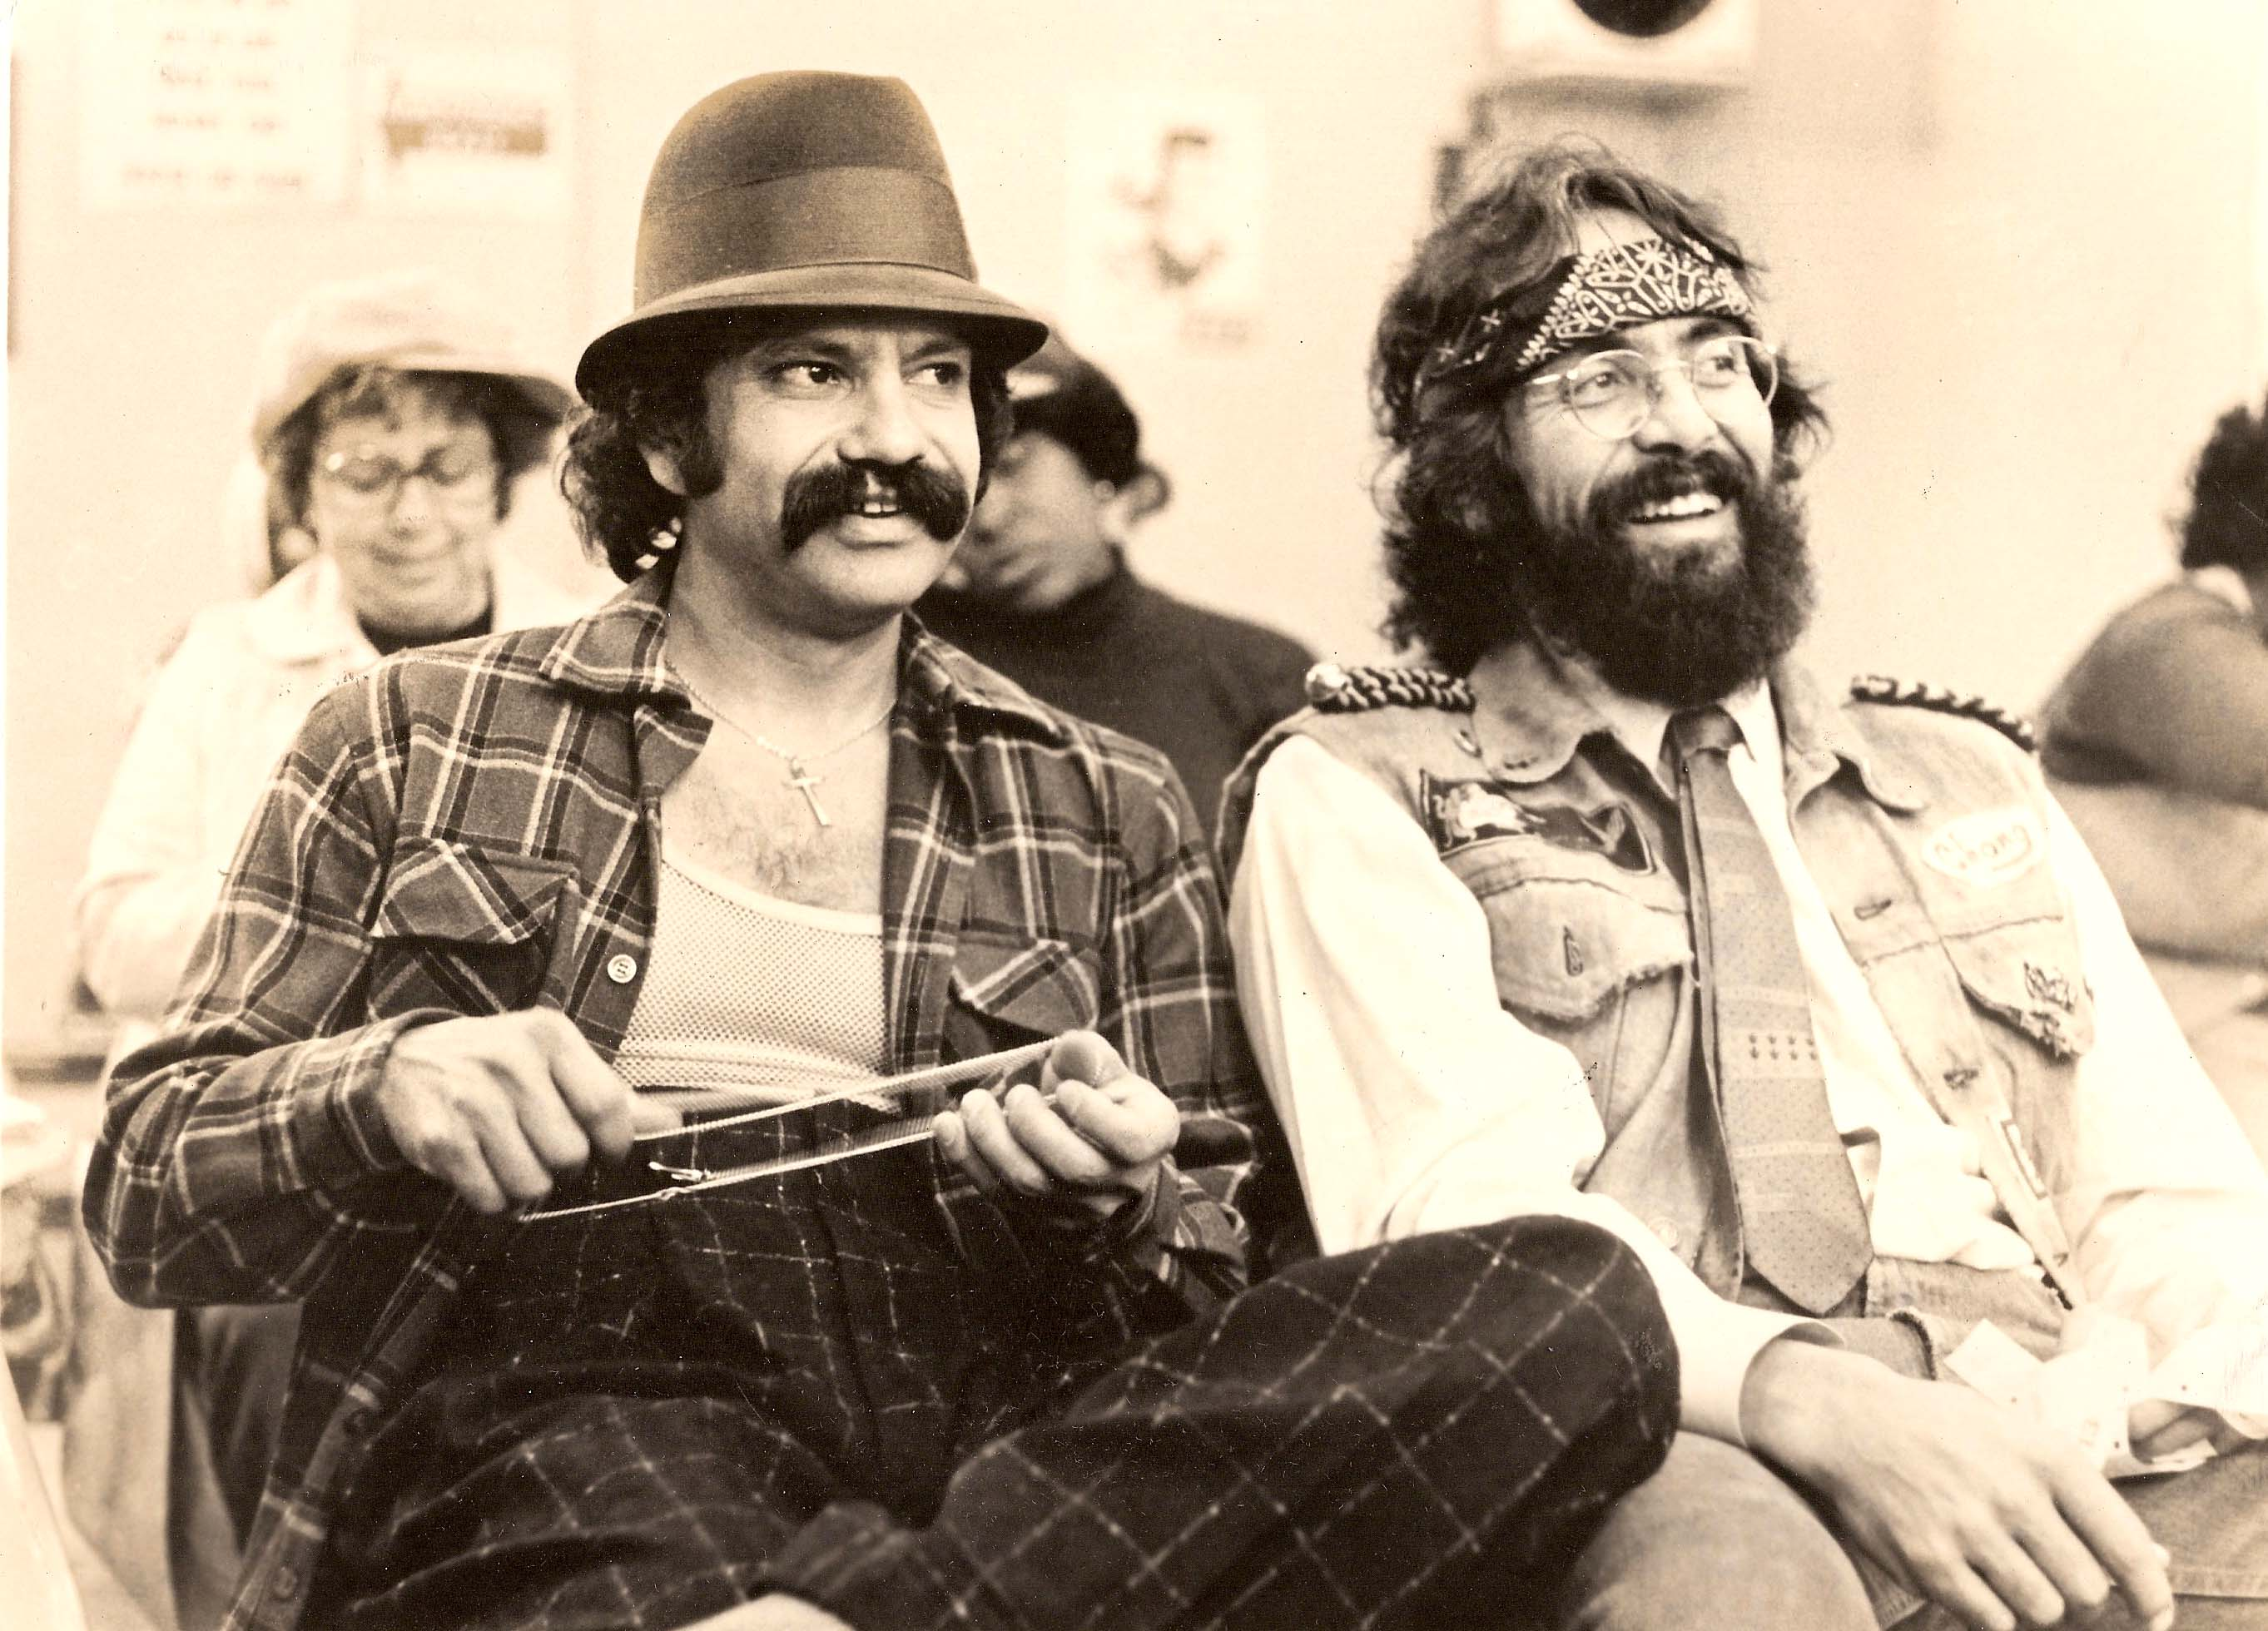 High Resolution Wallpaper | Cheech And Chong 2725x1960 px